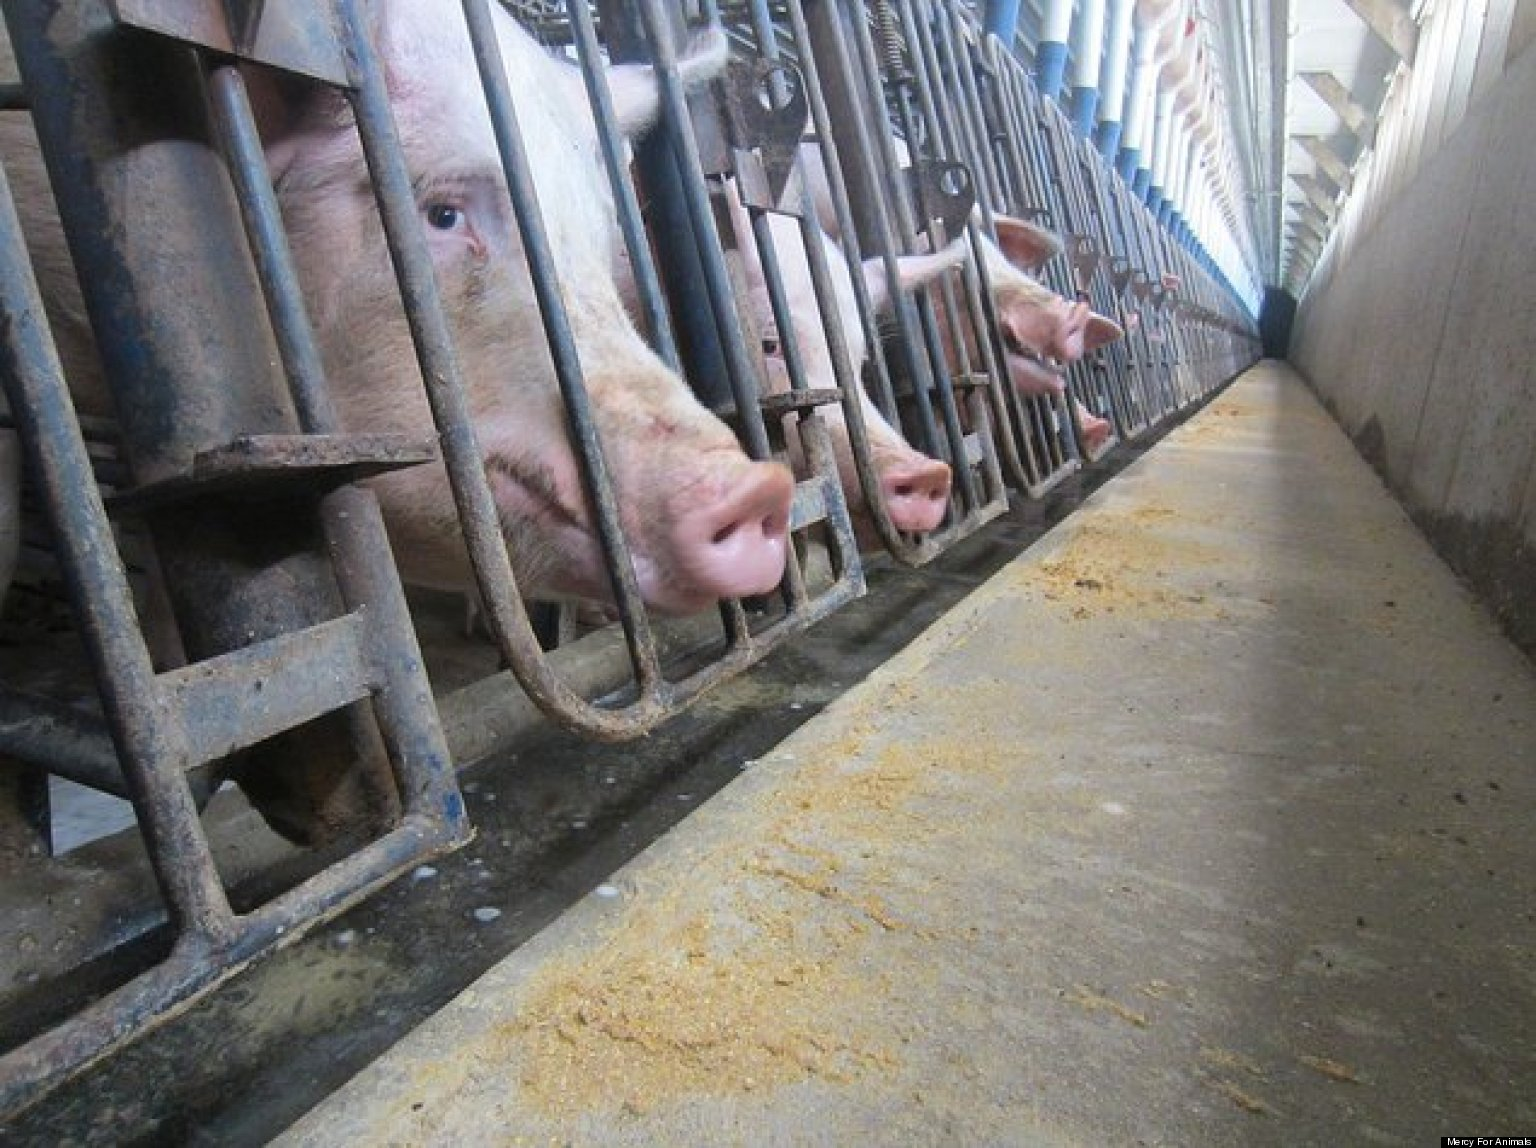 Factory Farming: Misery for Animals